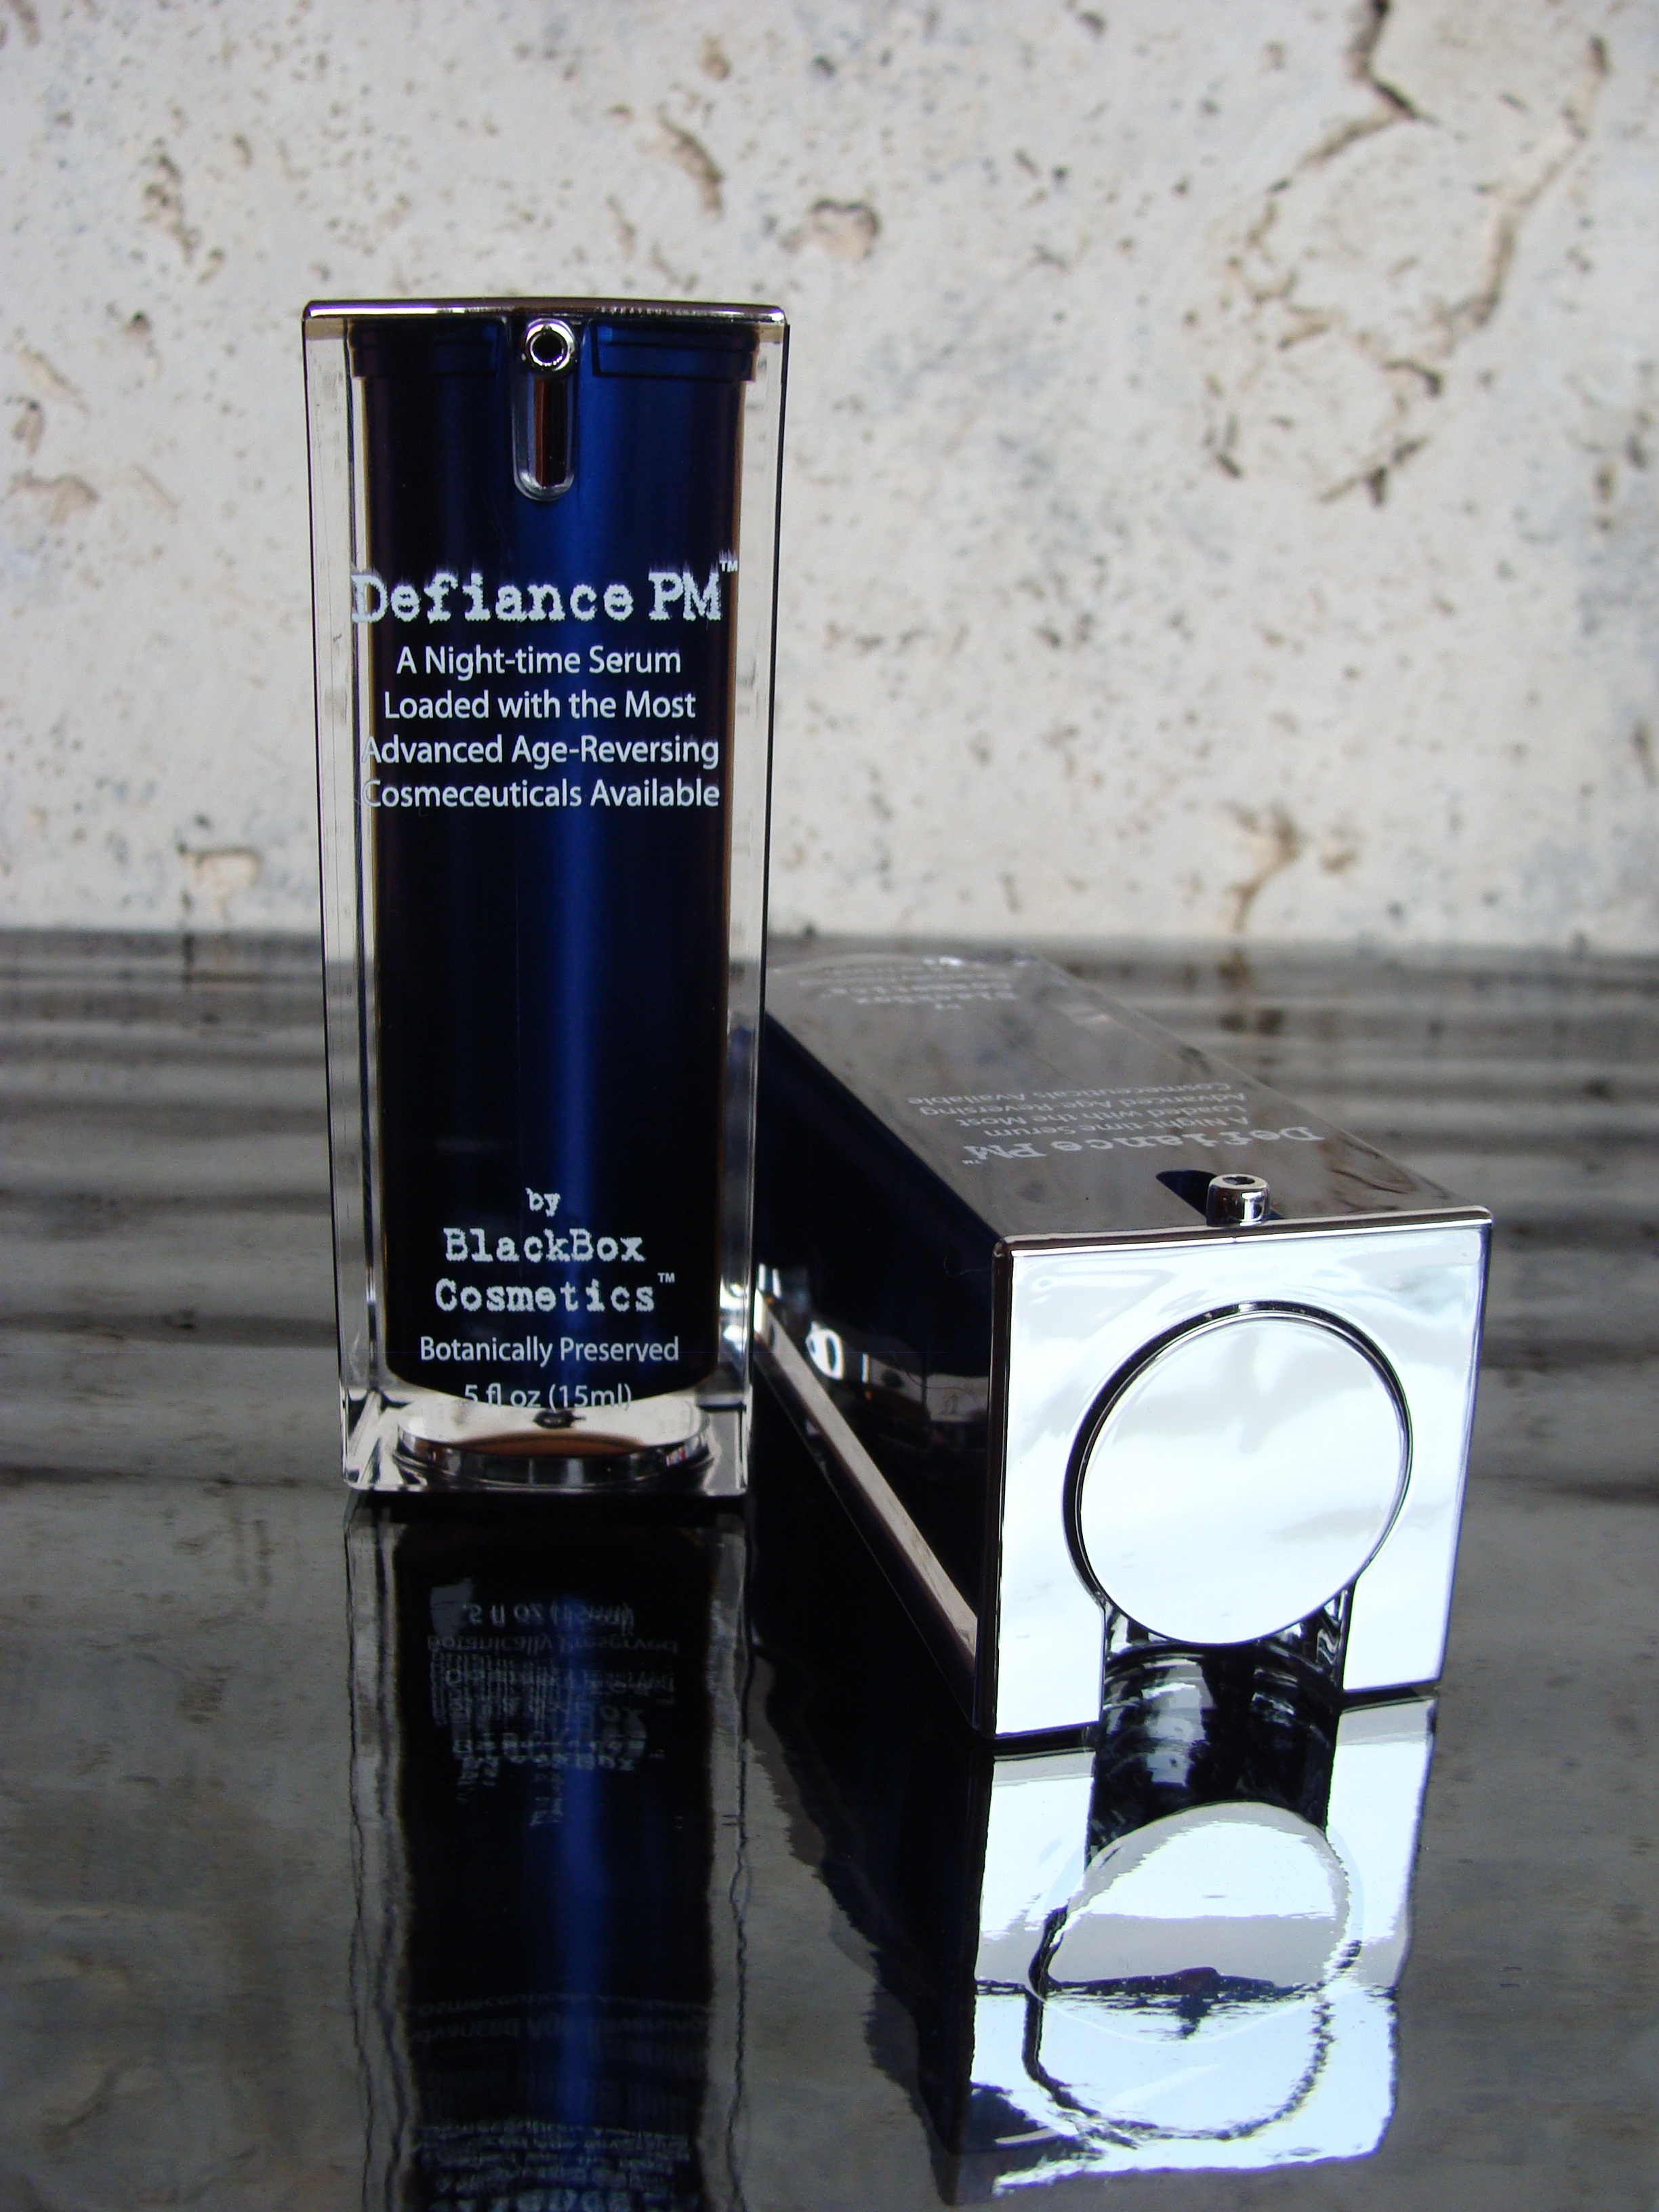 BlackBox Cosmetics Defiance PM